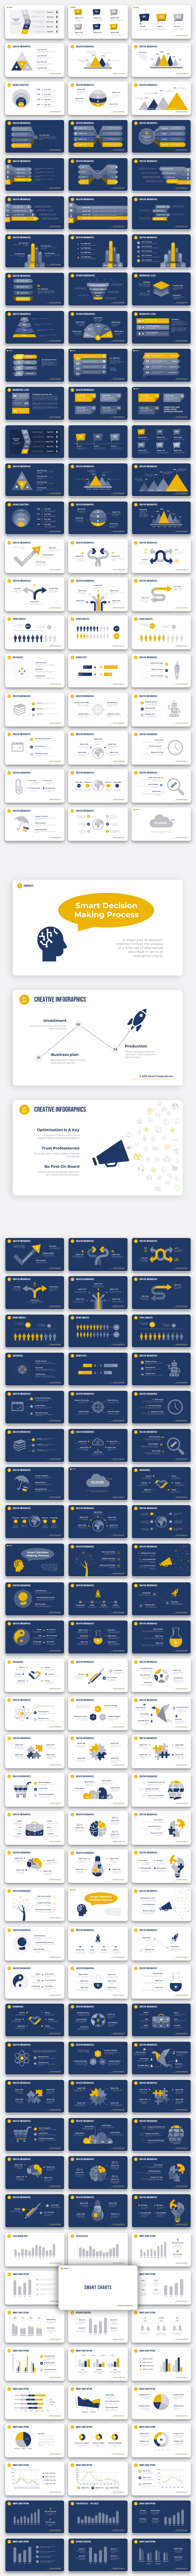 Corporate - Premium PowerPoint Template for Business - 11